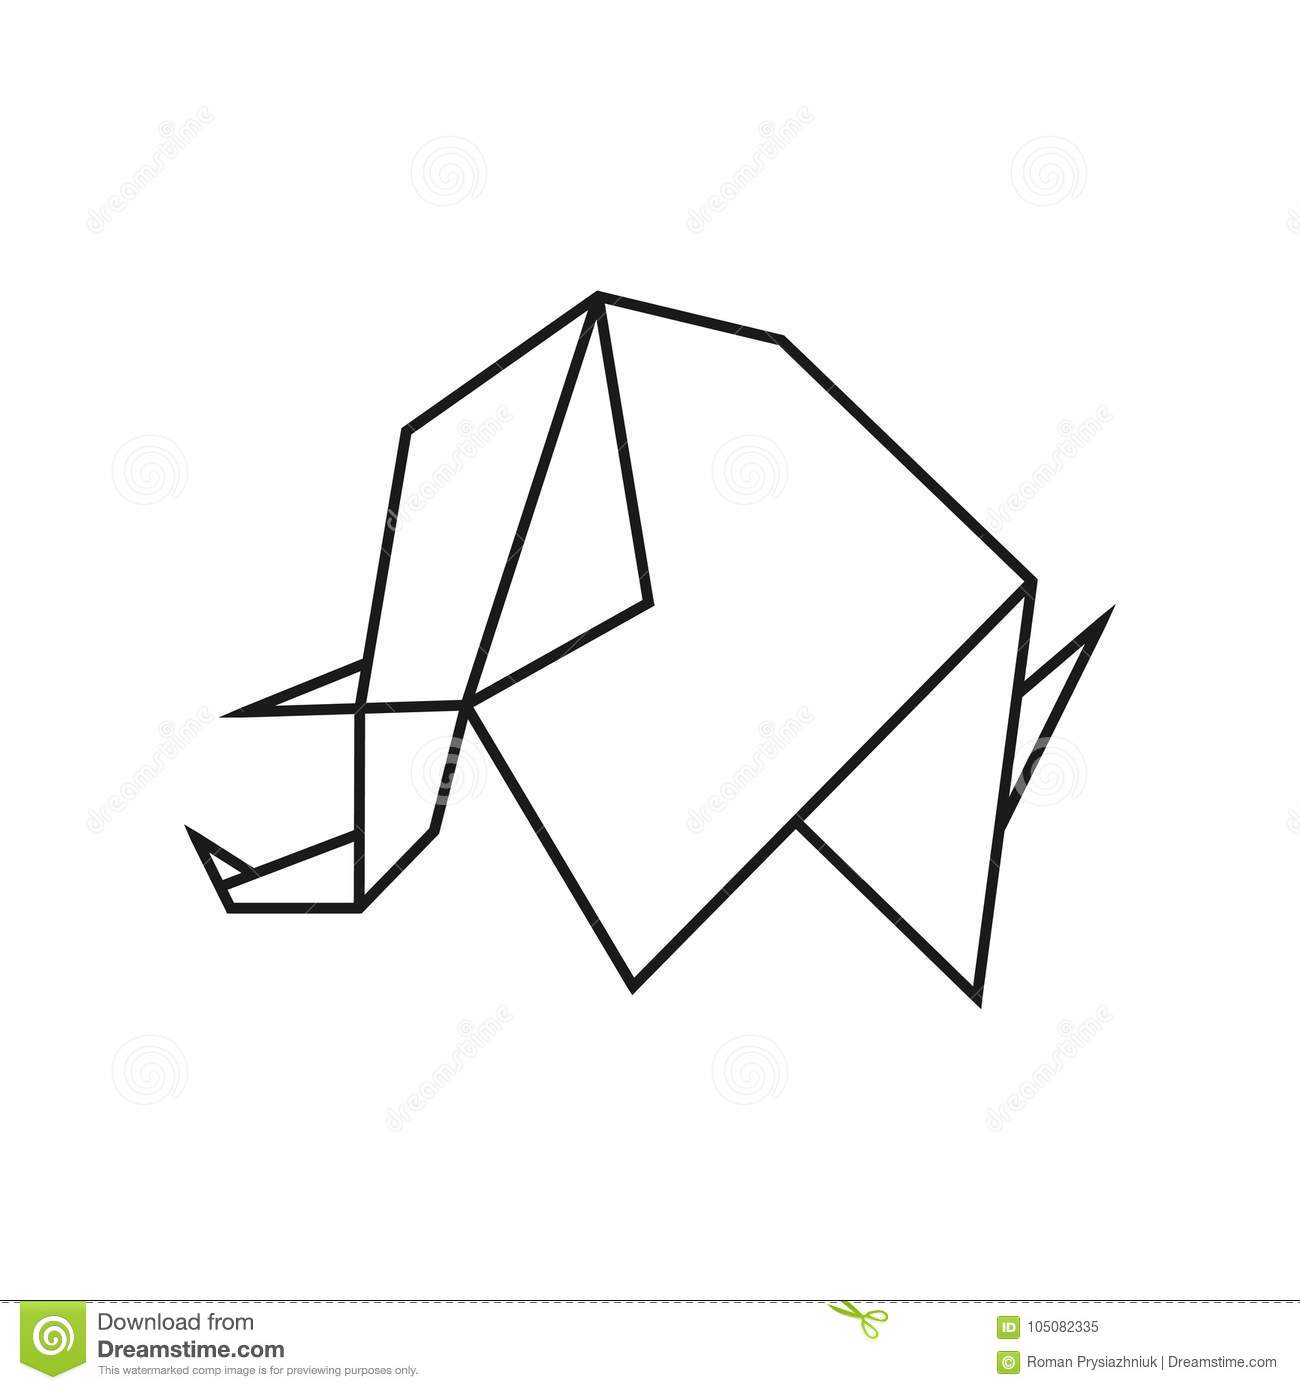 Download Origami Elephant Geometric Line Shape For Art Of Folded Paper Logo Template